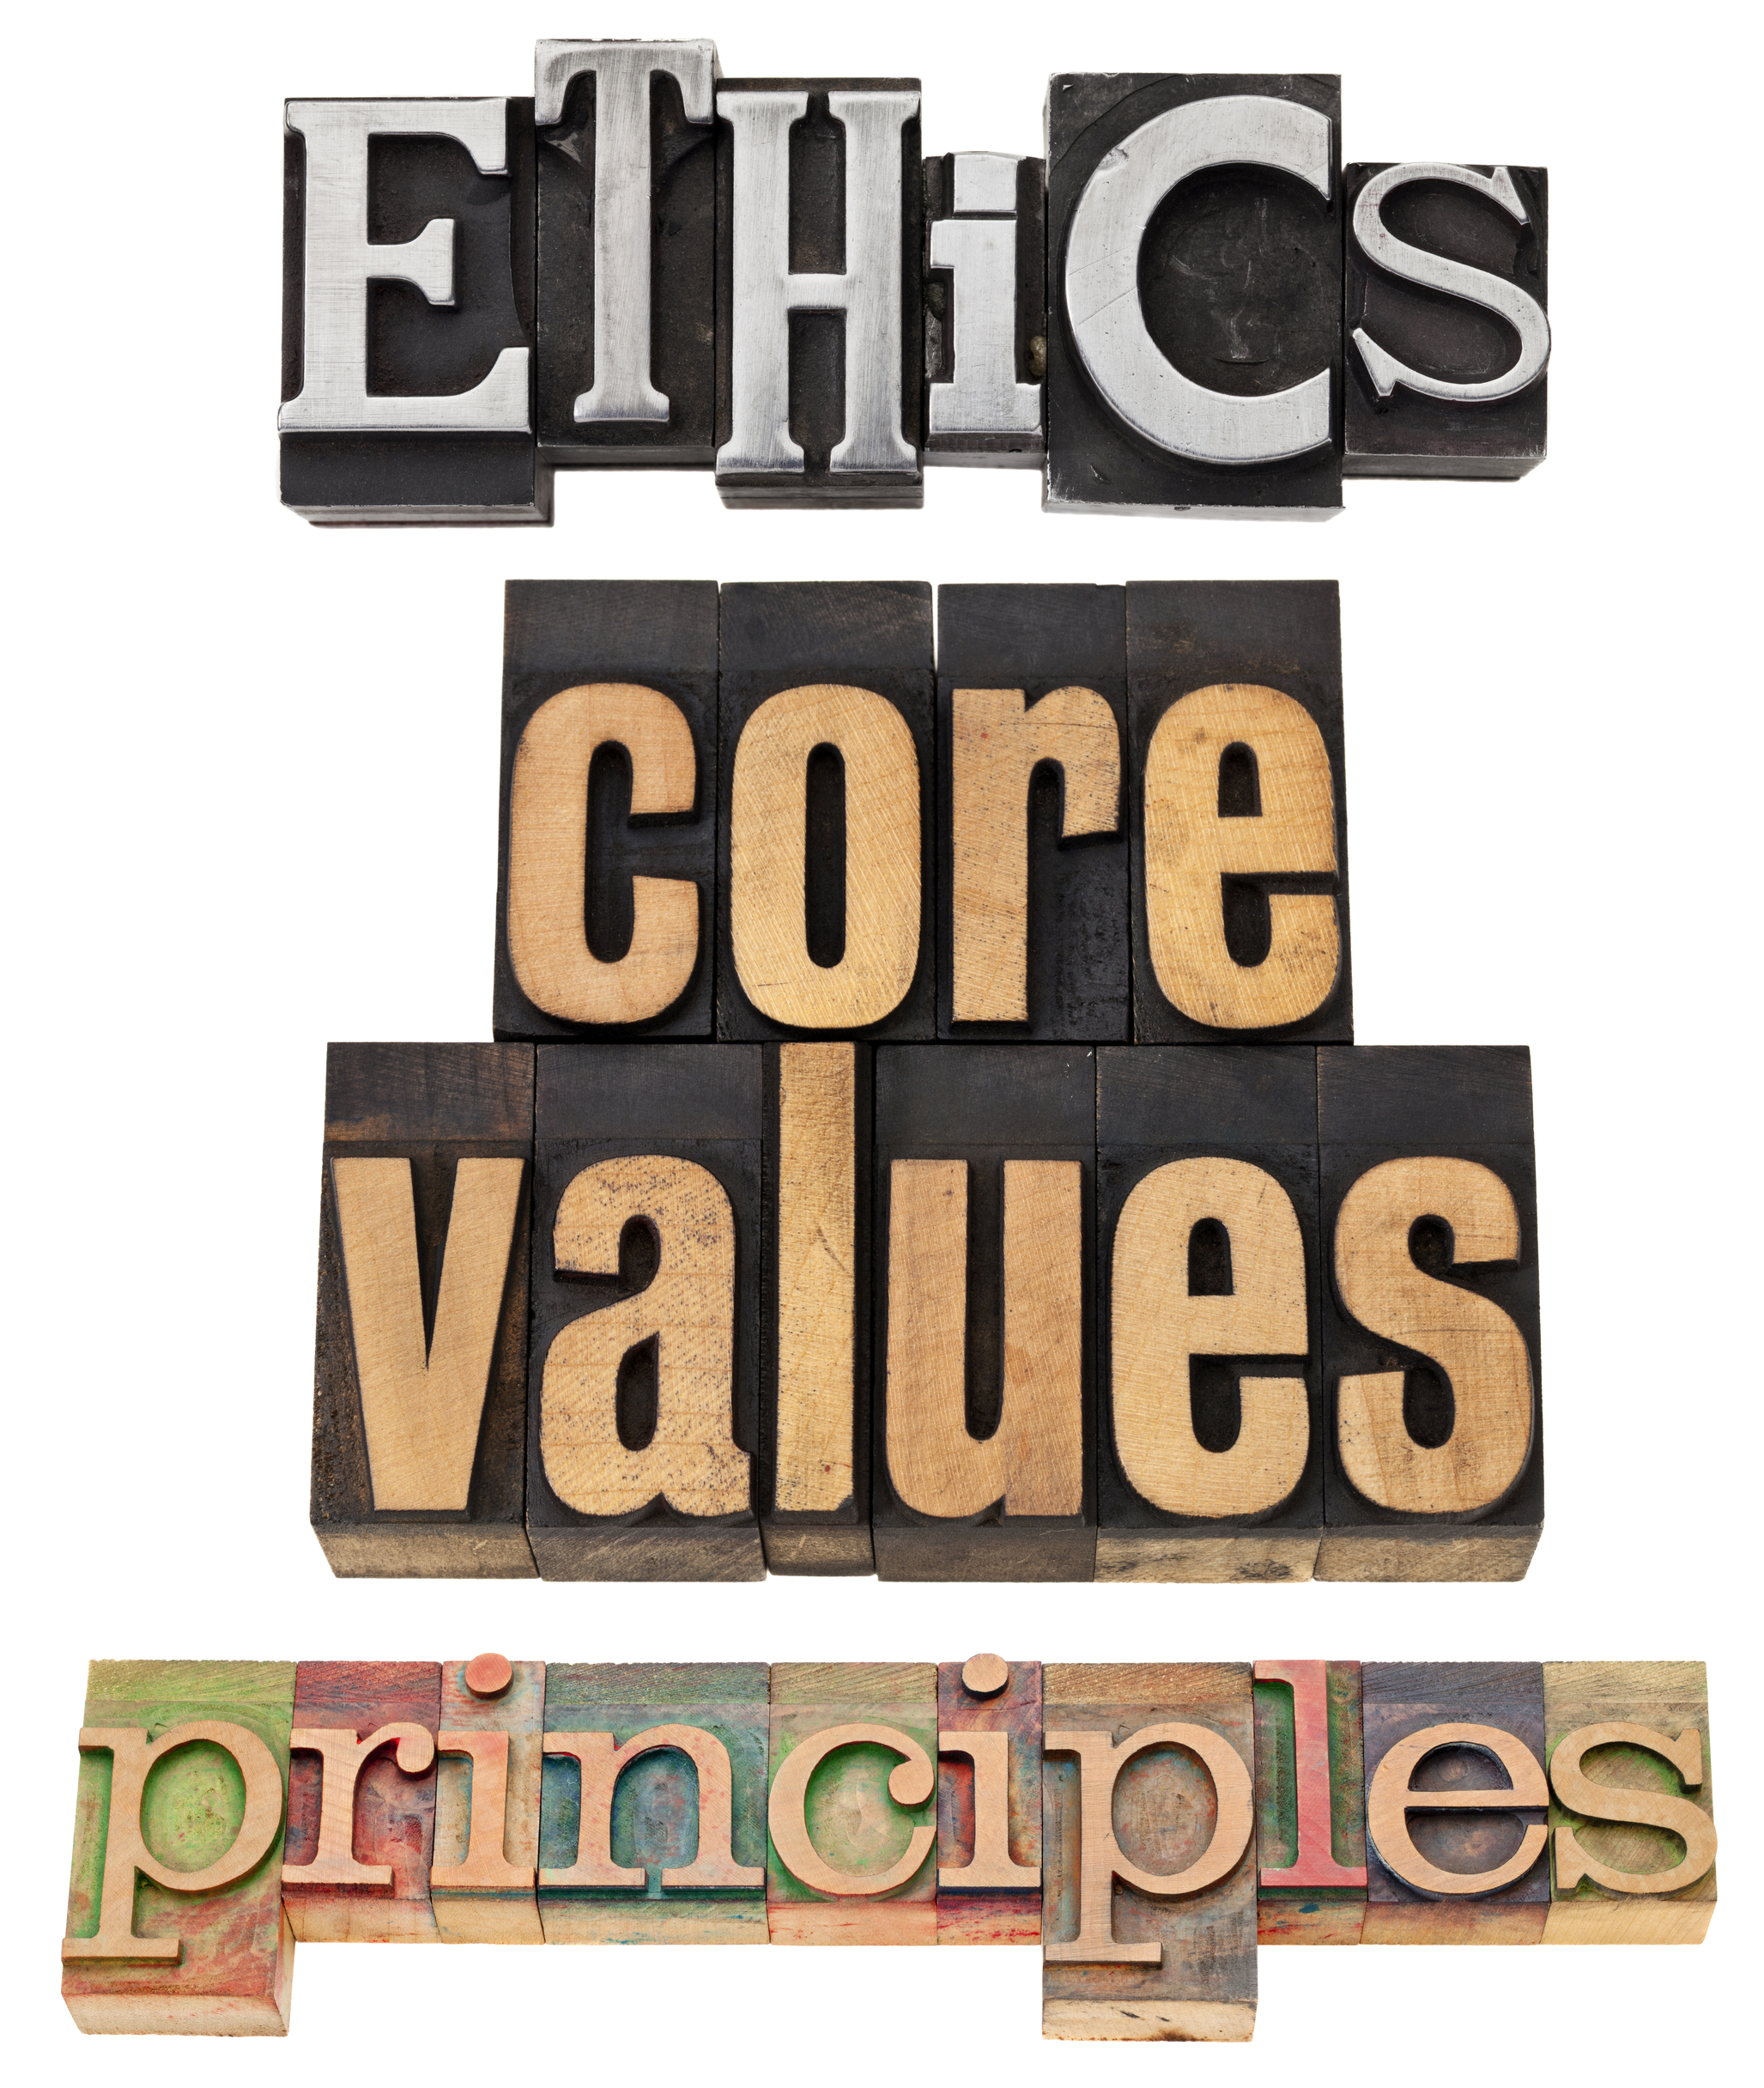 physical therapy ethical dilemma Objectives: to identify ethical dilemmas experienced by occupational and physical therapists working in the uk national health service (nhs) to compare ethical contexts, themes and principles across the two groups.